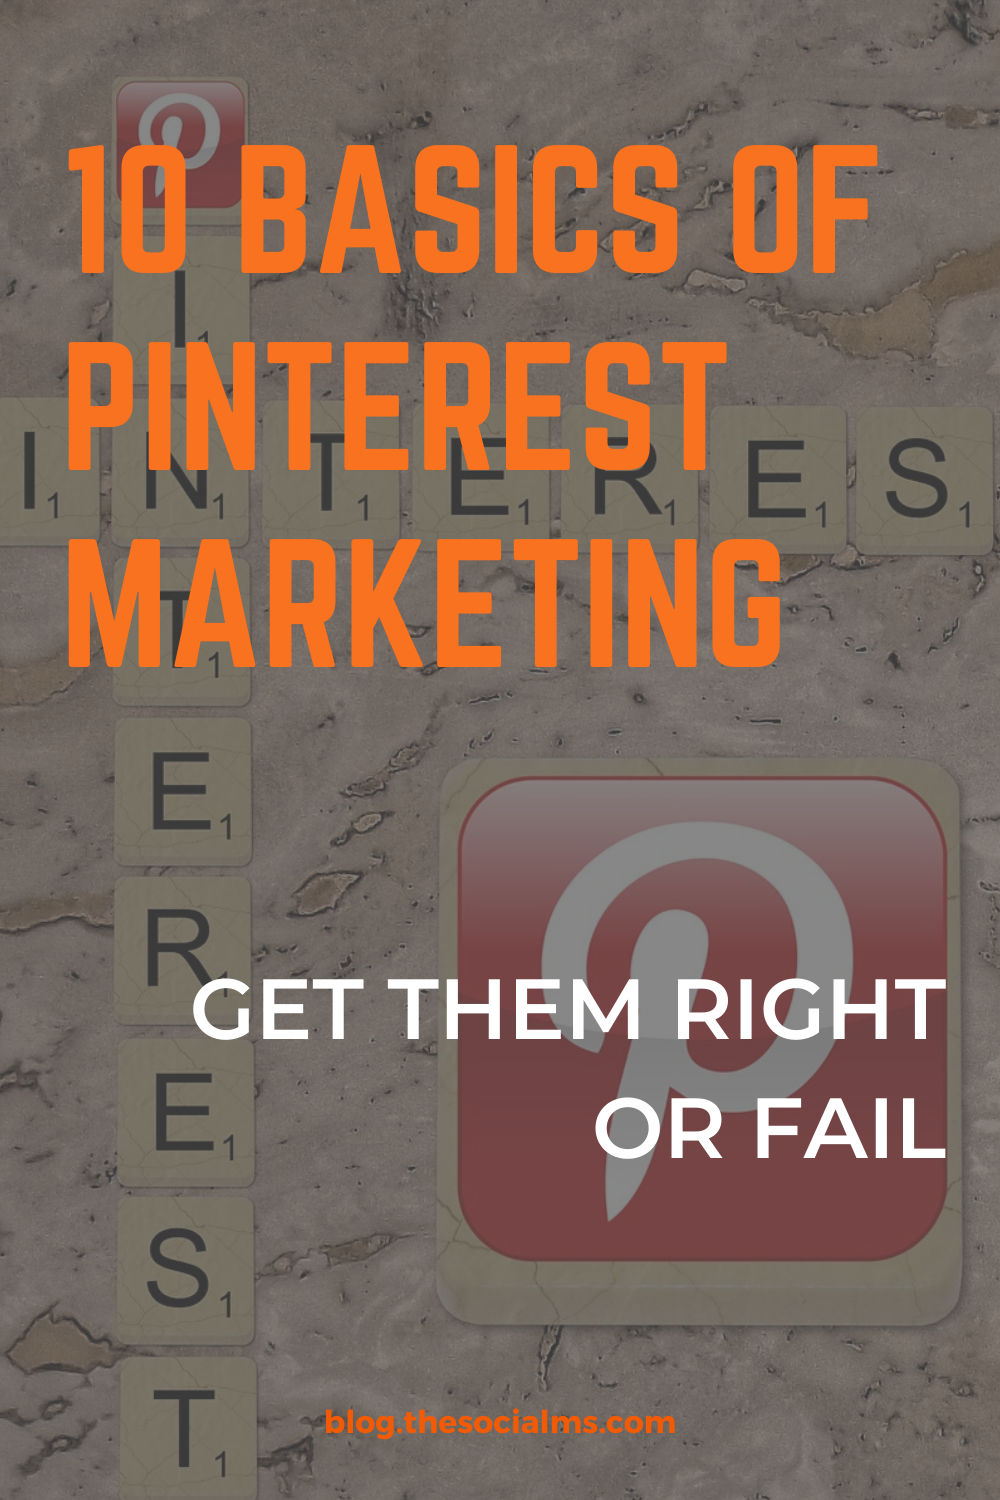 There are some basics you absolutely need to do on Pinterest or you will not see any kind of measurable results. So, to get you started, here are 10 things you need to do before you can expect your Pinterest marketing to take off. Before you start looking for traffic from Pinterest, get these right. #pinterest #pinterestbasics #pinterestmarketing #pinteresttips #blogtraffic #trafficgeneration #socialmedia #socialmediatips